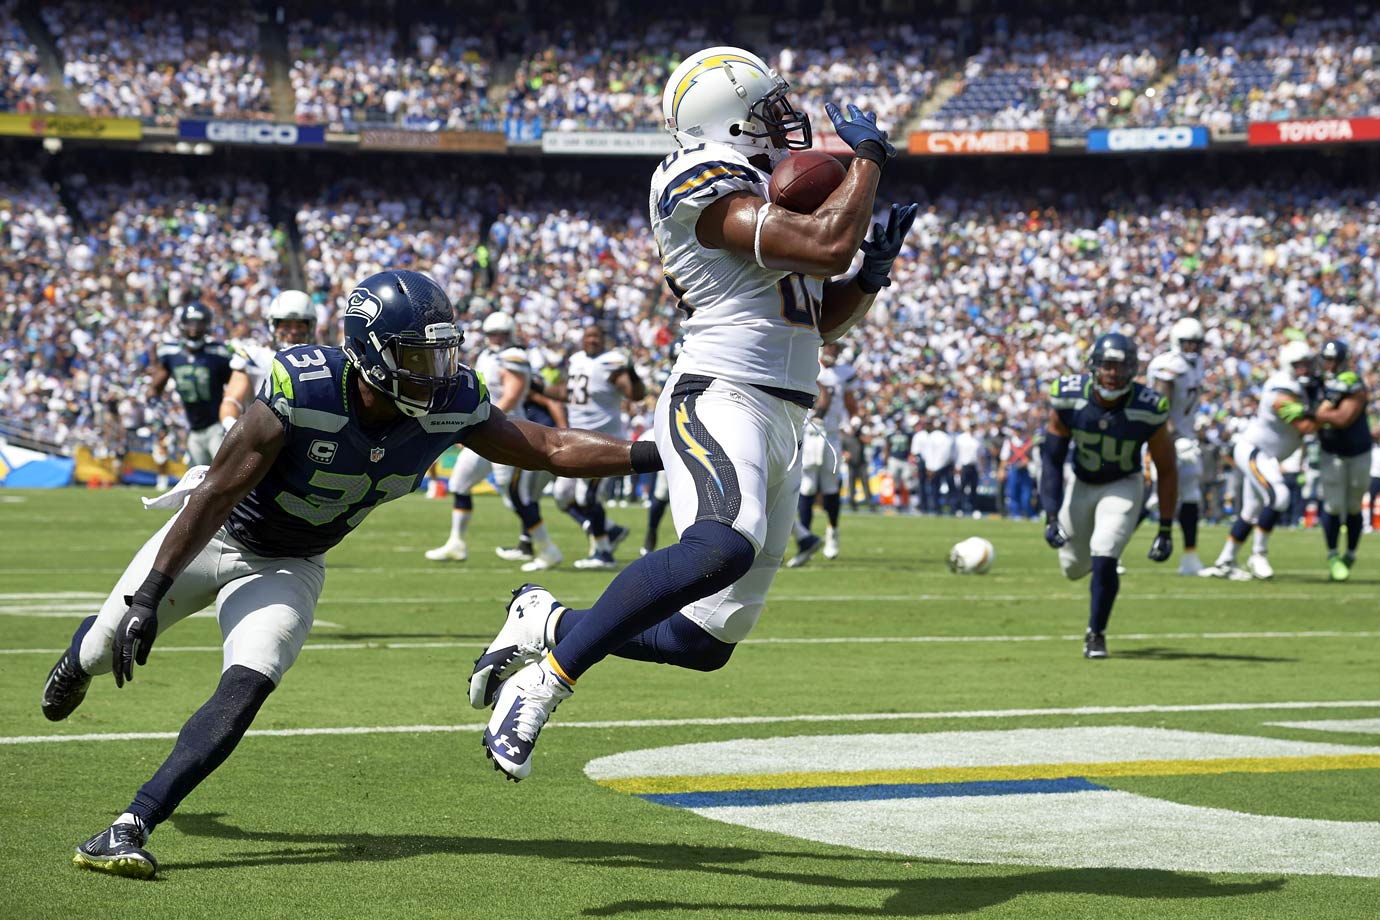 The Seattle secondary could not slow down Antonio Gates in Week 2, as the Chargers' tight end caught seven passes for 96 yards in three touchdowns, leading San Diego to a 30-21 victory over the Seahawks.